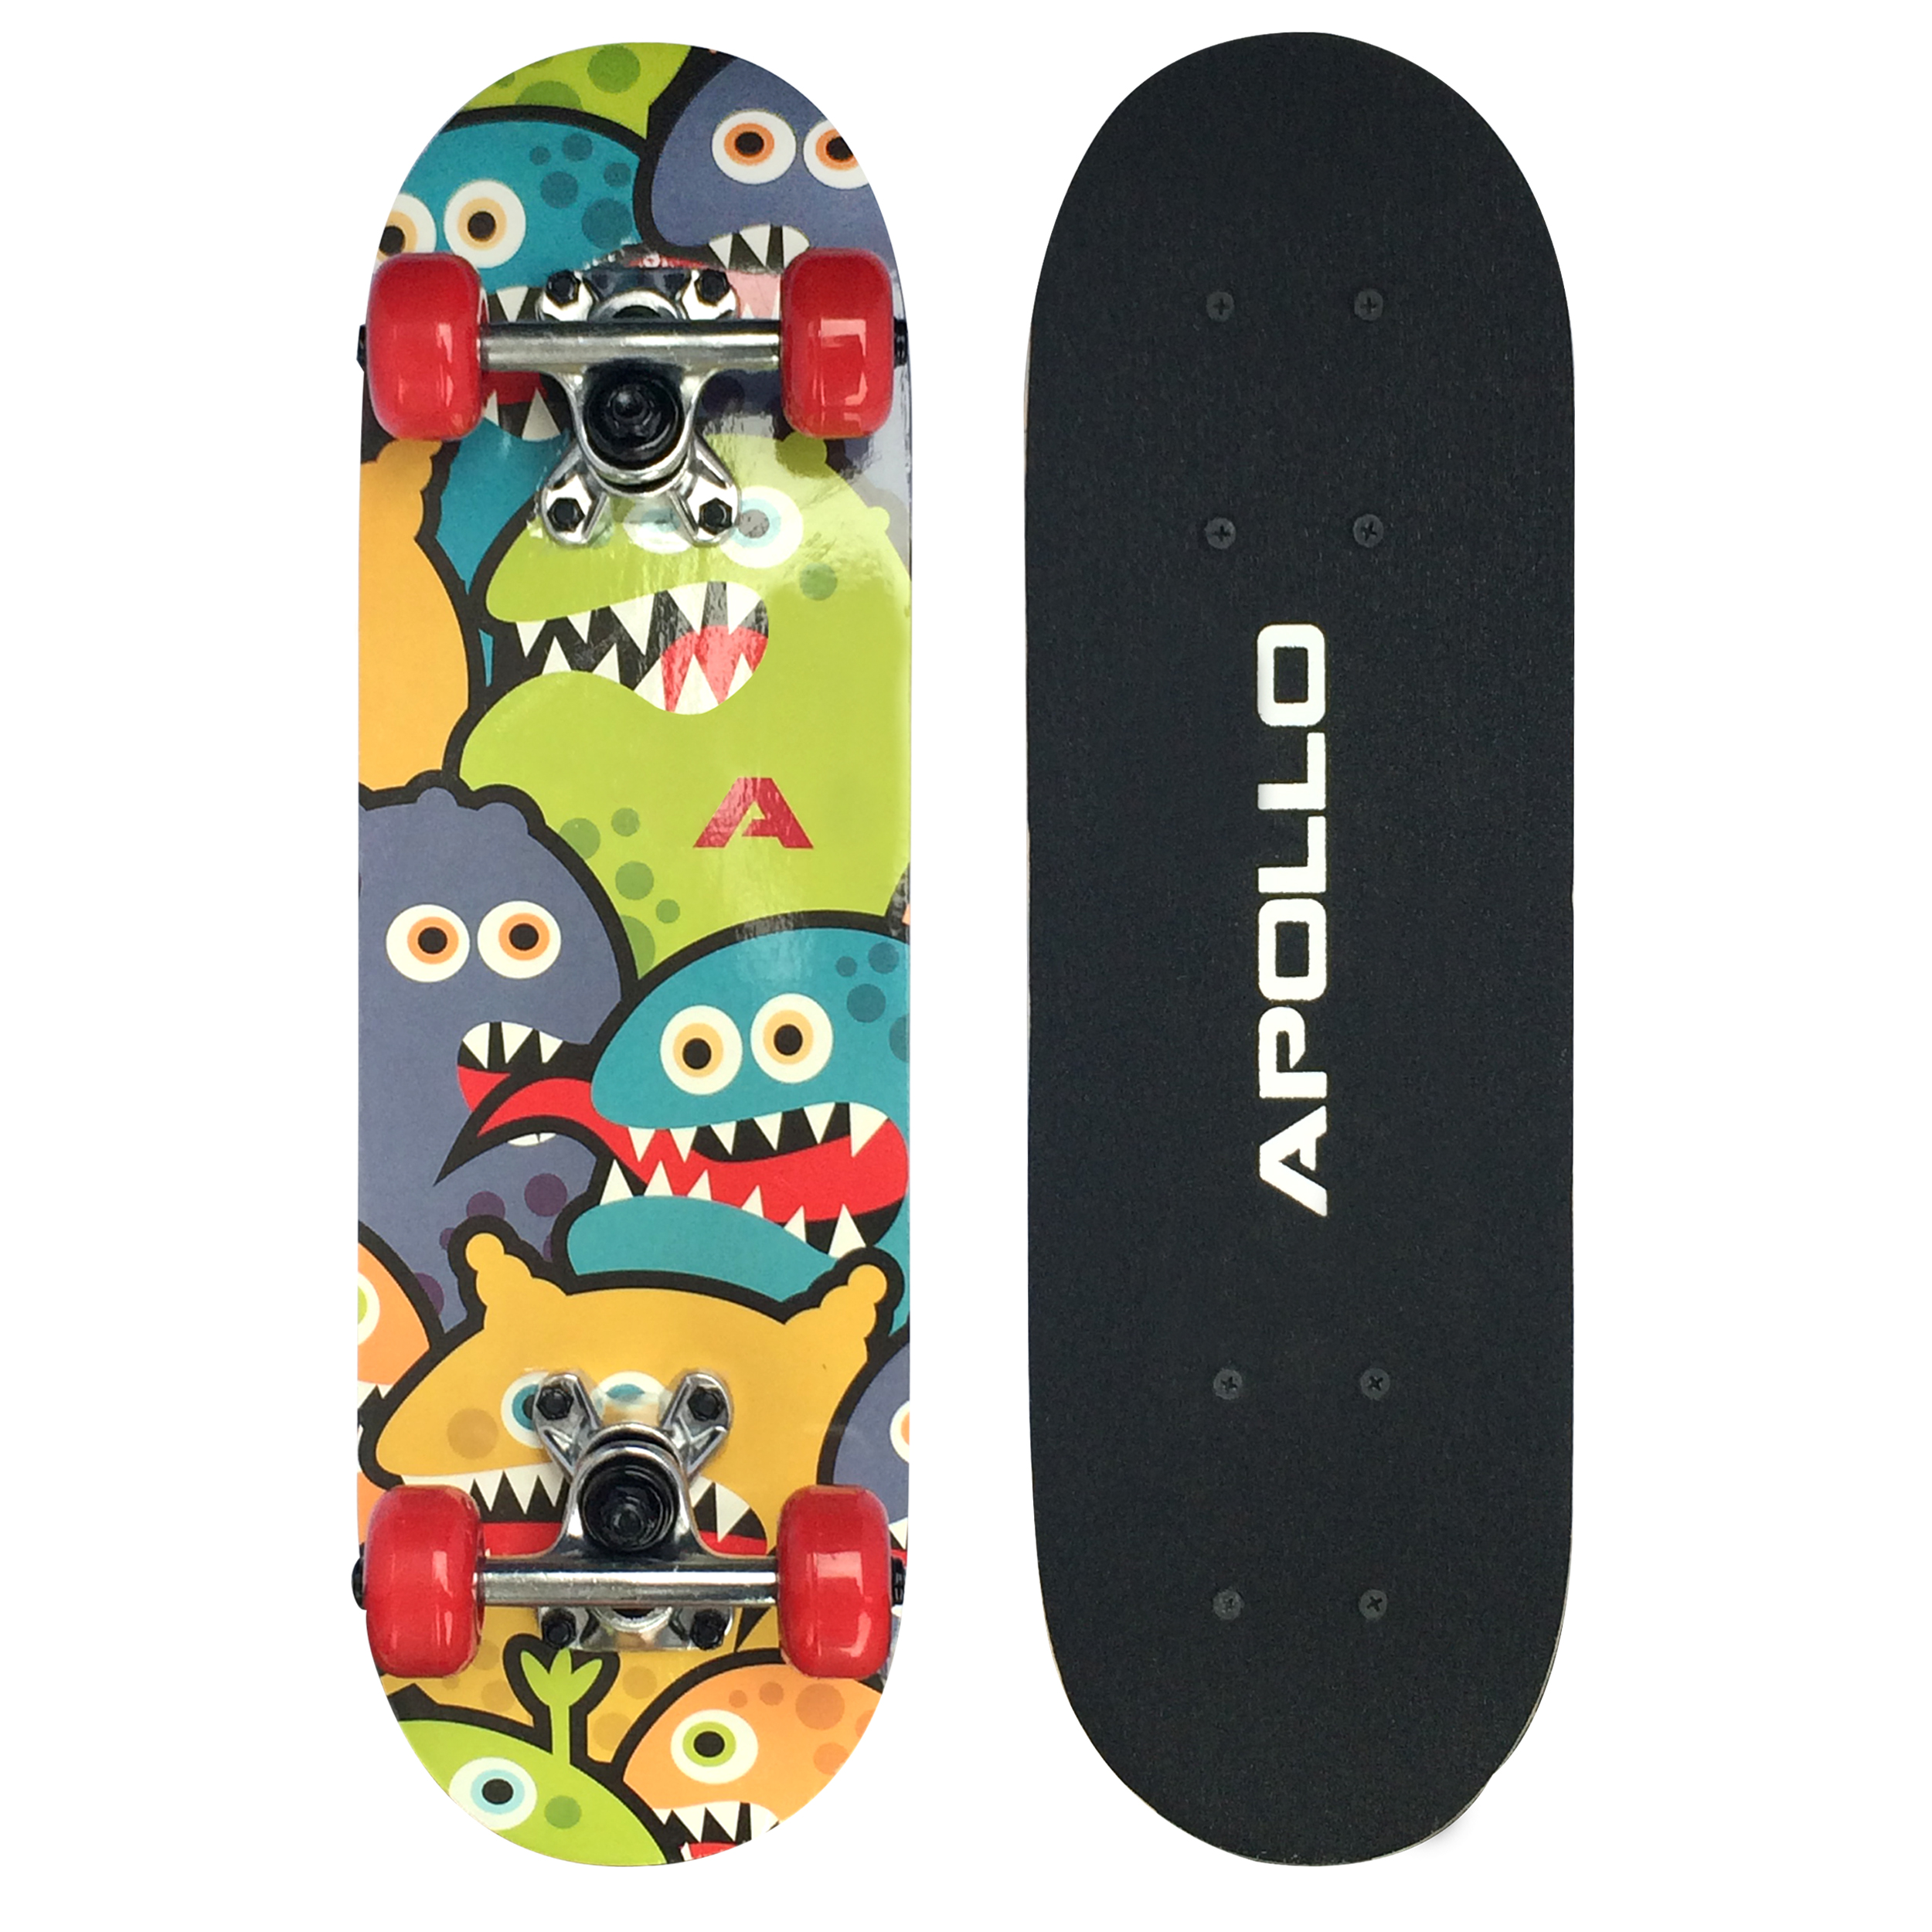 apollo skateboard skate board kinder funboard skater longboard komplettboard ebay. Black Bedroom Furniture Sets. Home Design Ideas